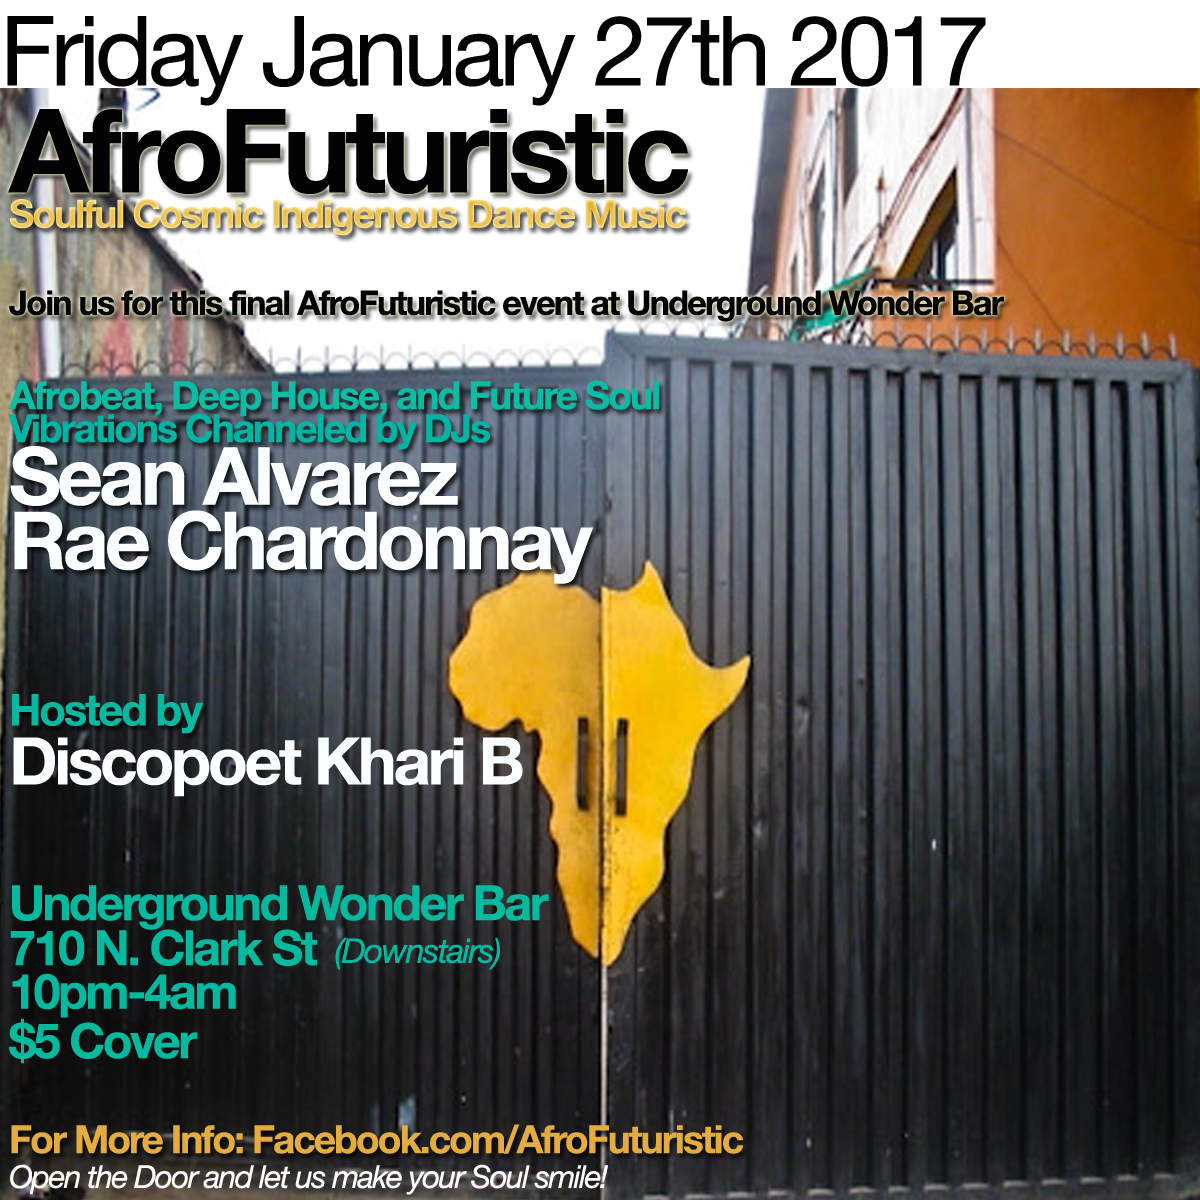 Friday January 27th: AfroFuturistic UWB Finale